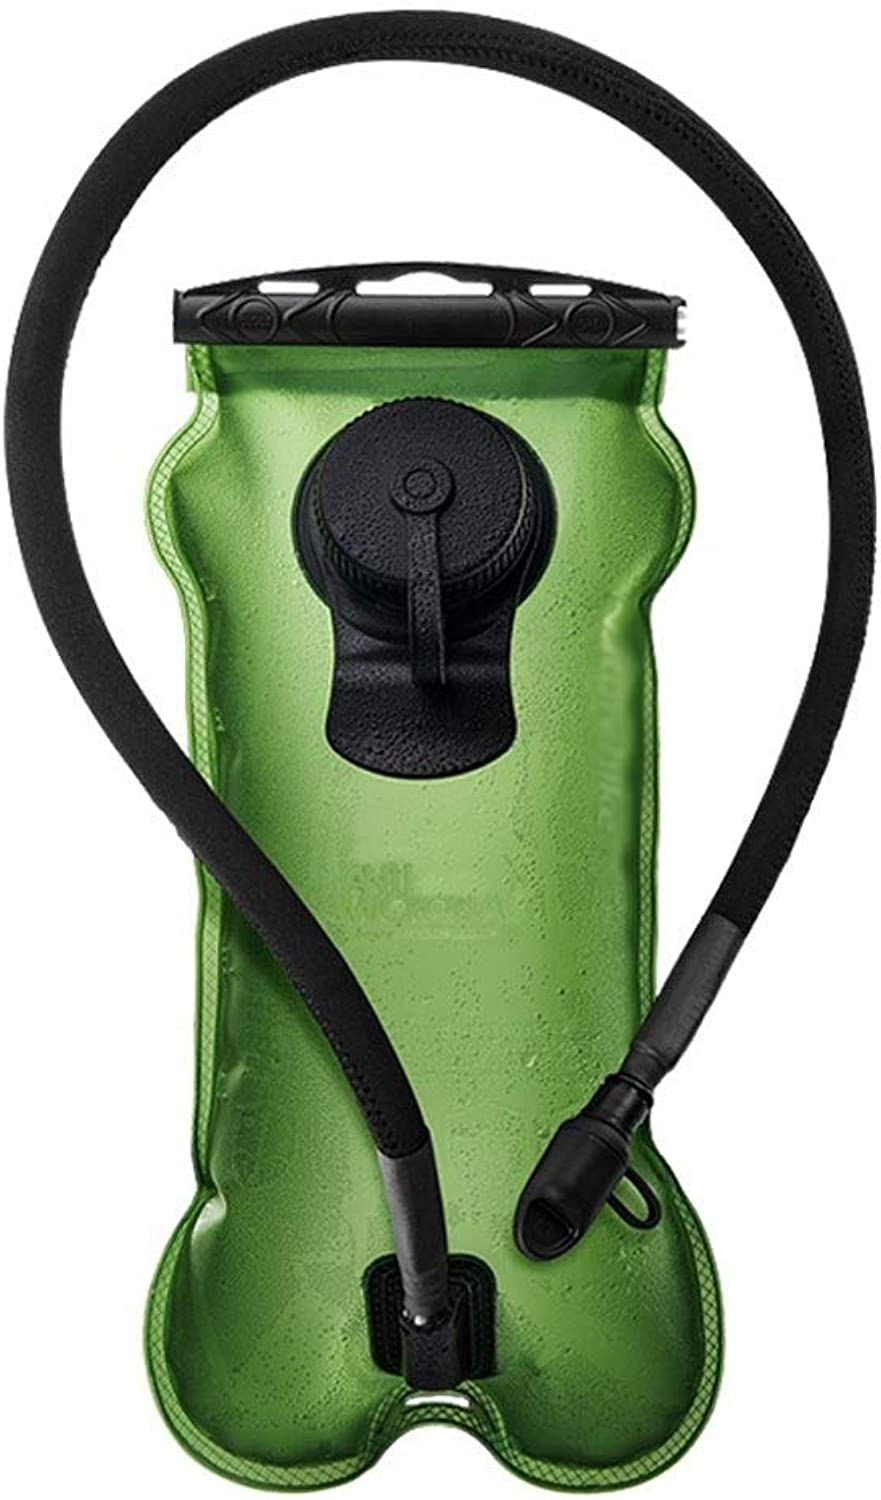 Hydration Bladder Leak Proof Water Reservoir, Military Water Storage Bladder Bag,Free Hydration Pack Replacement, for Hiking Biking Climbing Cycling Running, Large Opening